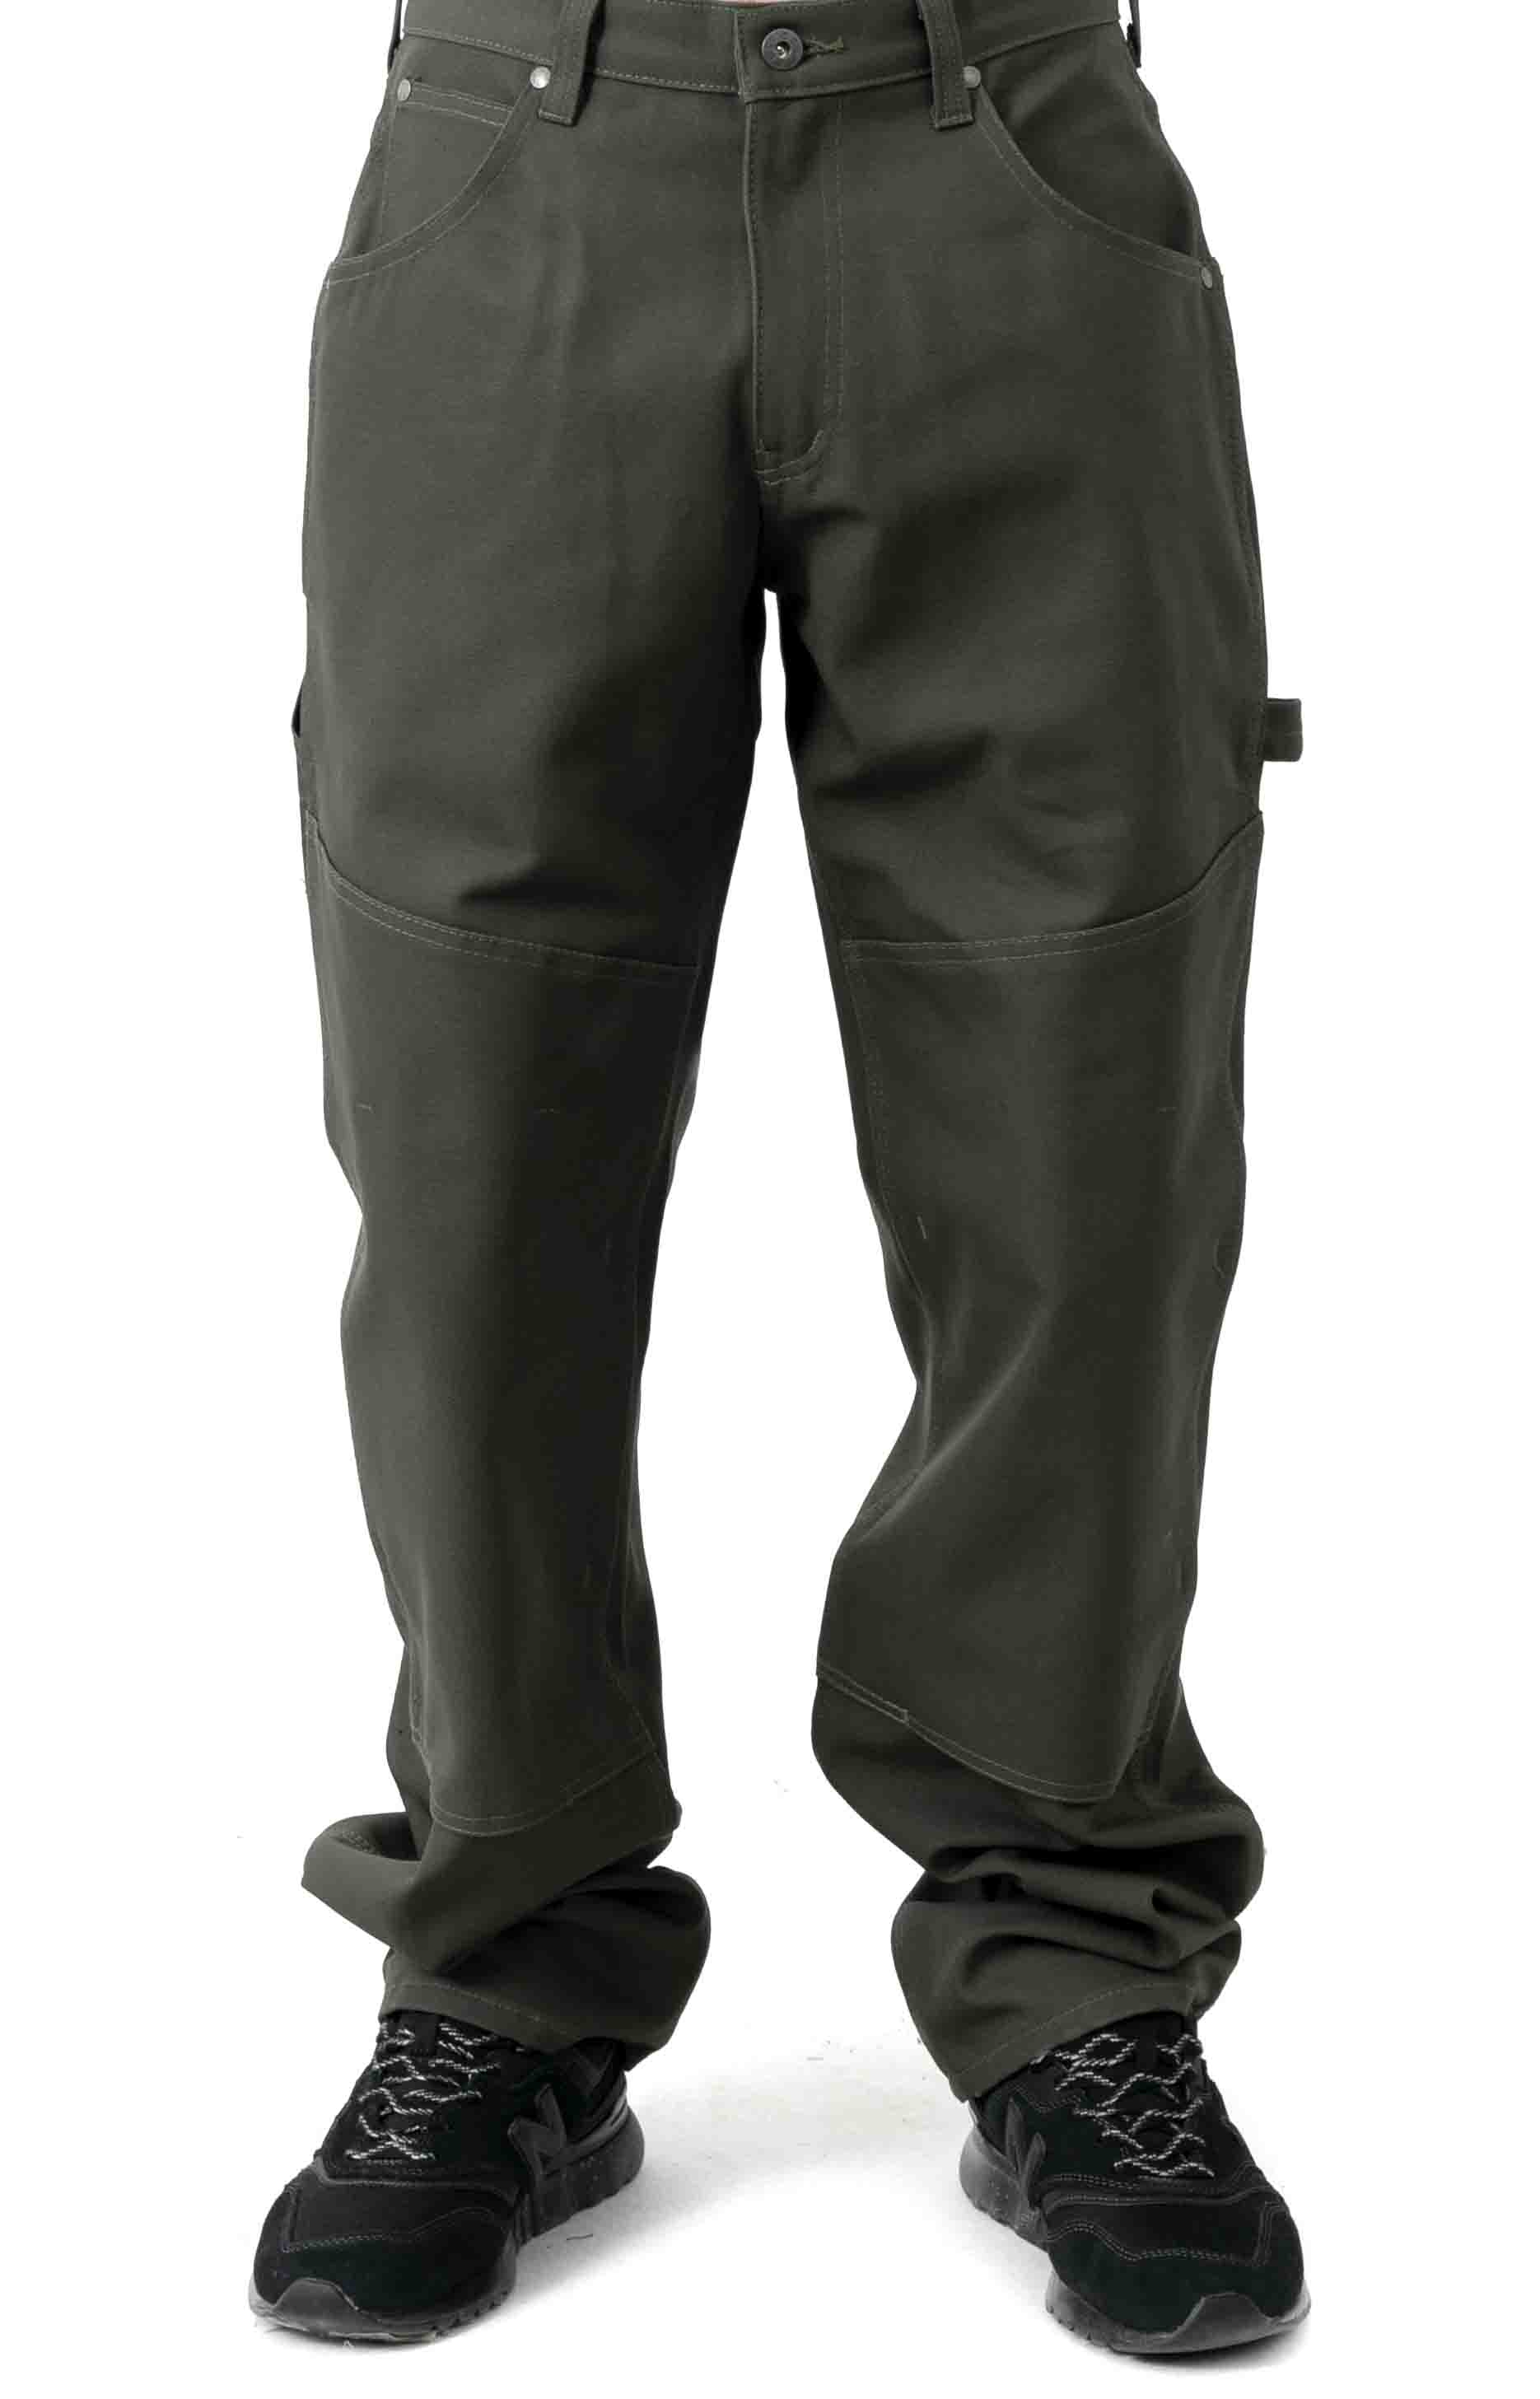 C.C.F. Utility Canvas Pant - Cannonball Green